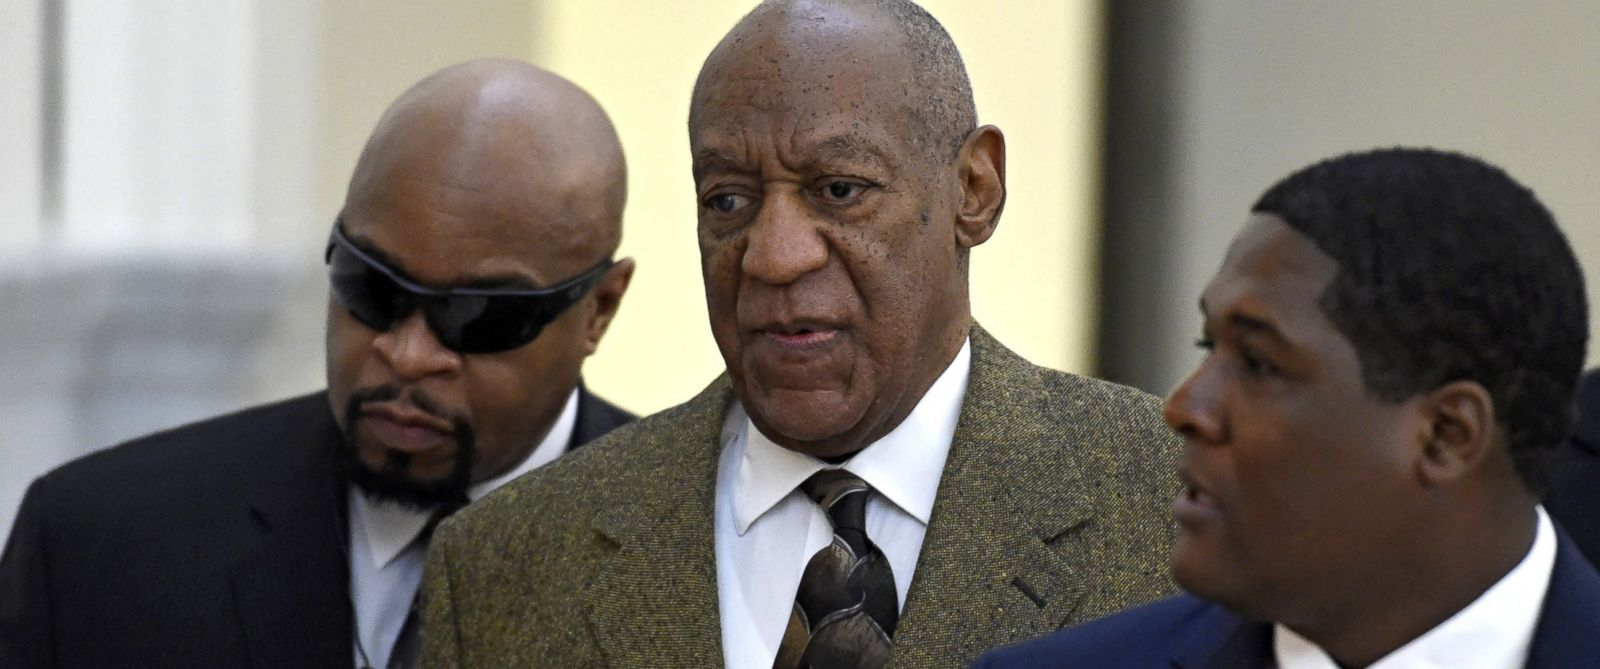 PHOTO: Bill Cosby arrives for a pre-trail hearing in his sexual assault case at the Montgomery County Courthouse, Feb. 2, 2016, in Norristown, Pennsylvania.